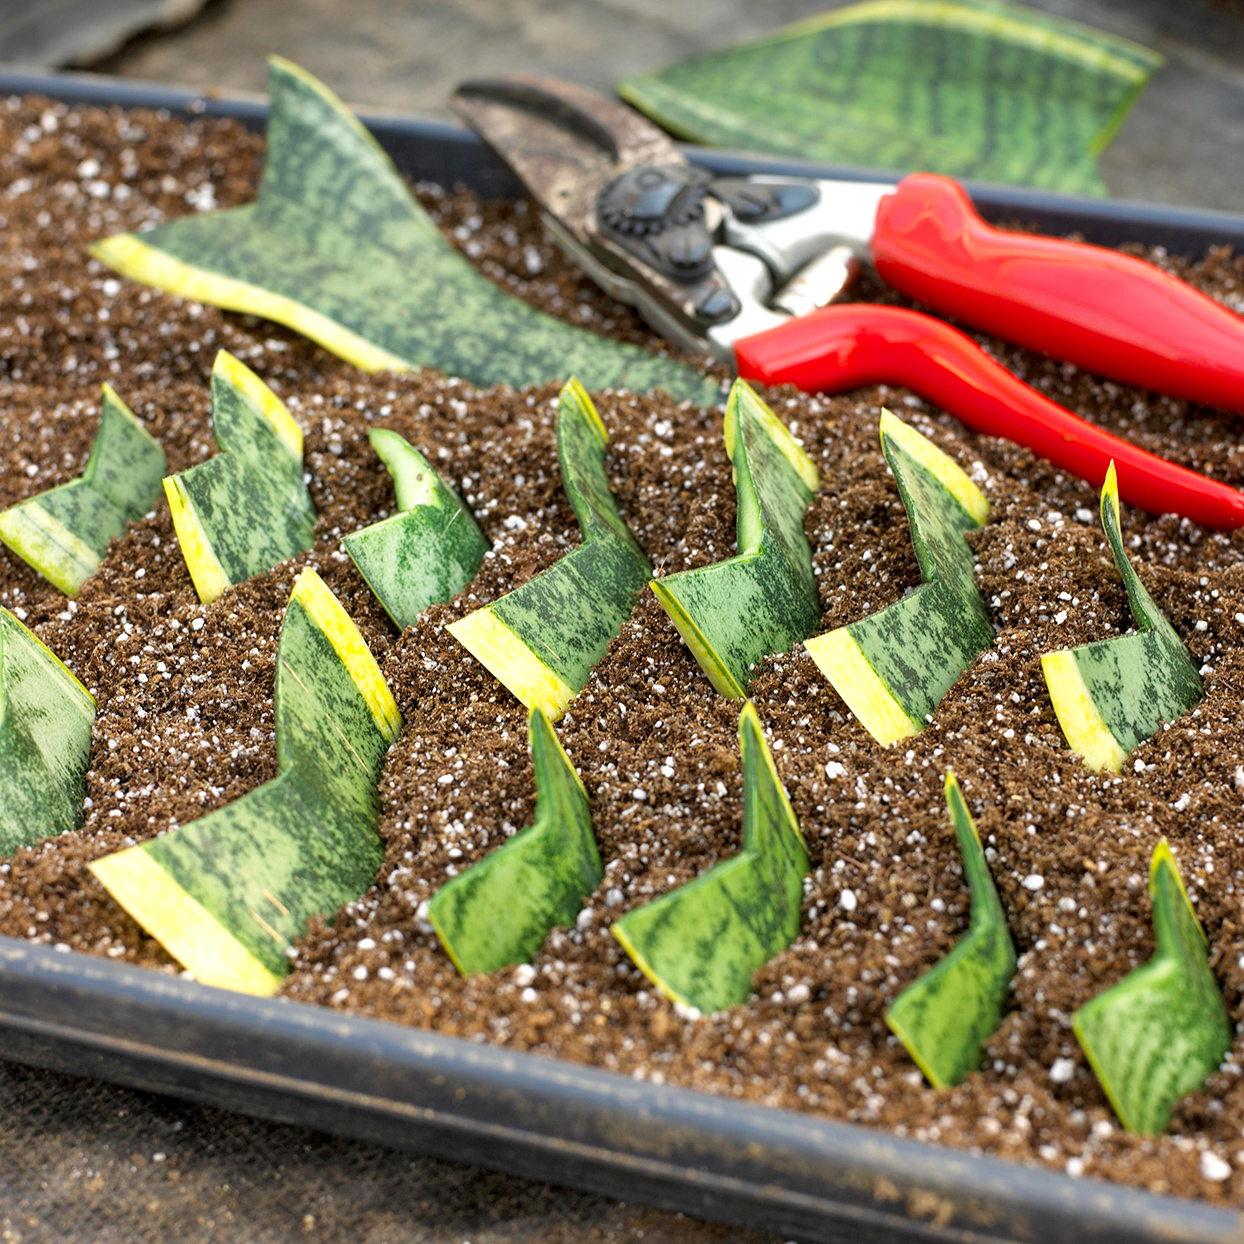 sansaveria leaf cutting with red pruners